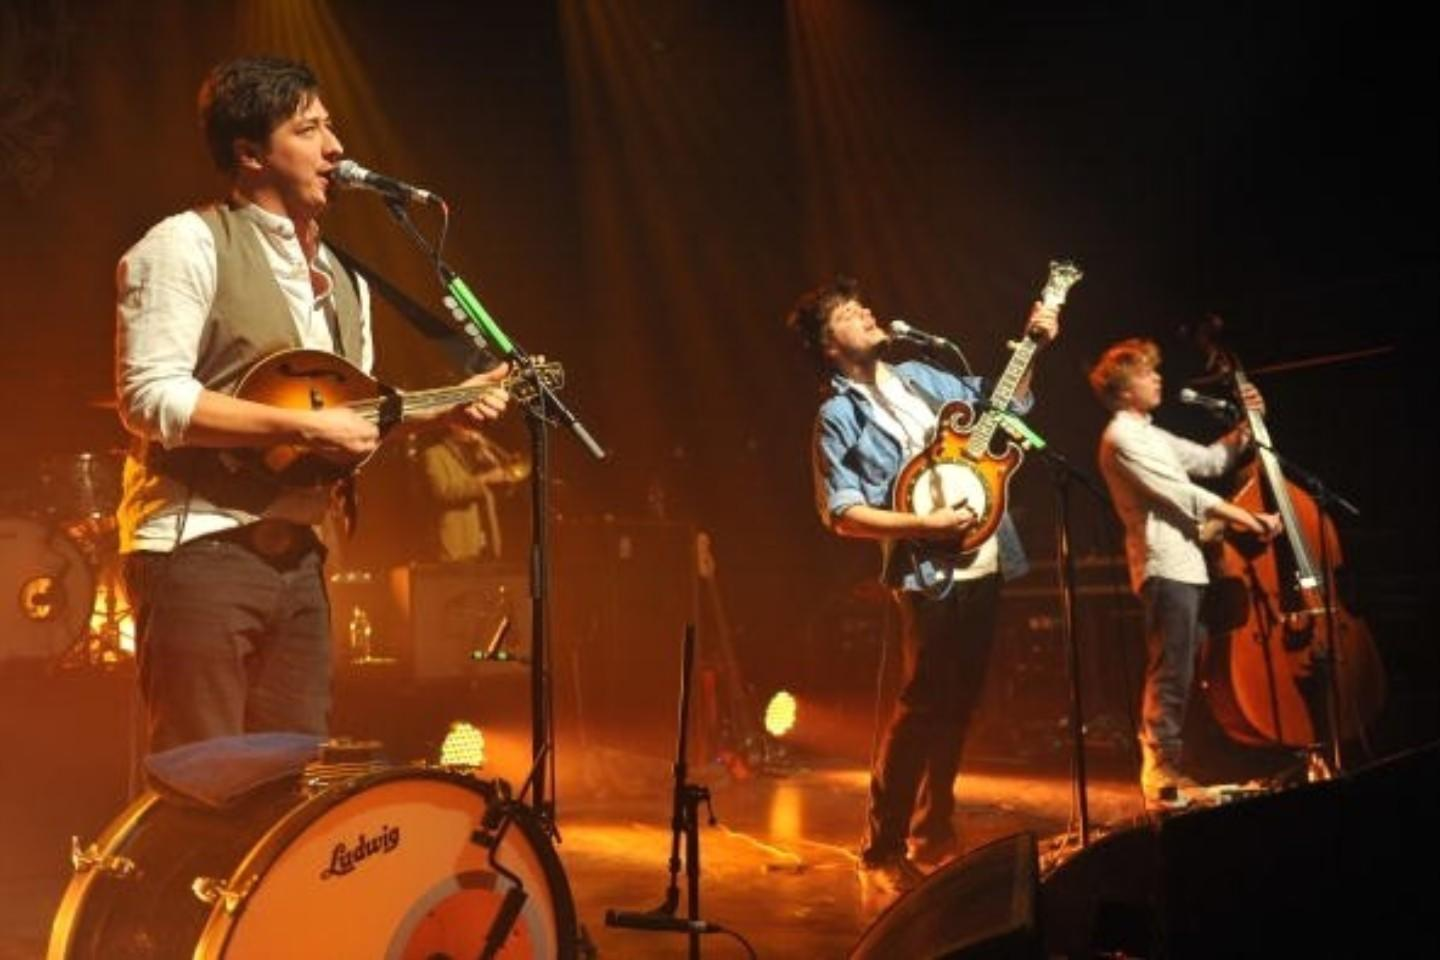 Mumford & Sons Tour 2020 Mumford and Sons Tickets | Mumford and Sons Tour 2020 Tickets